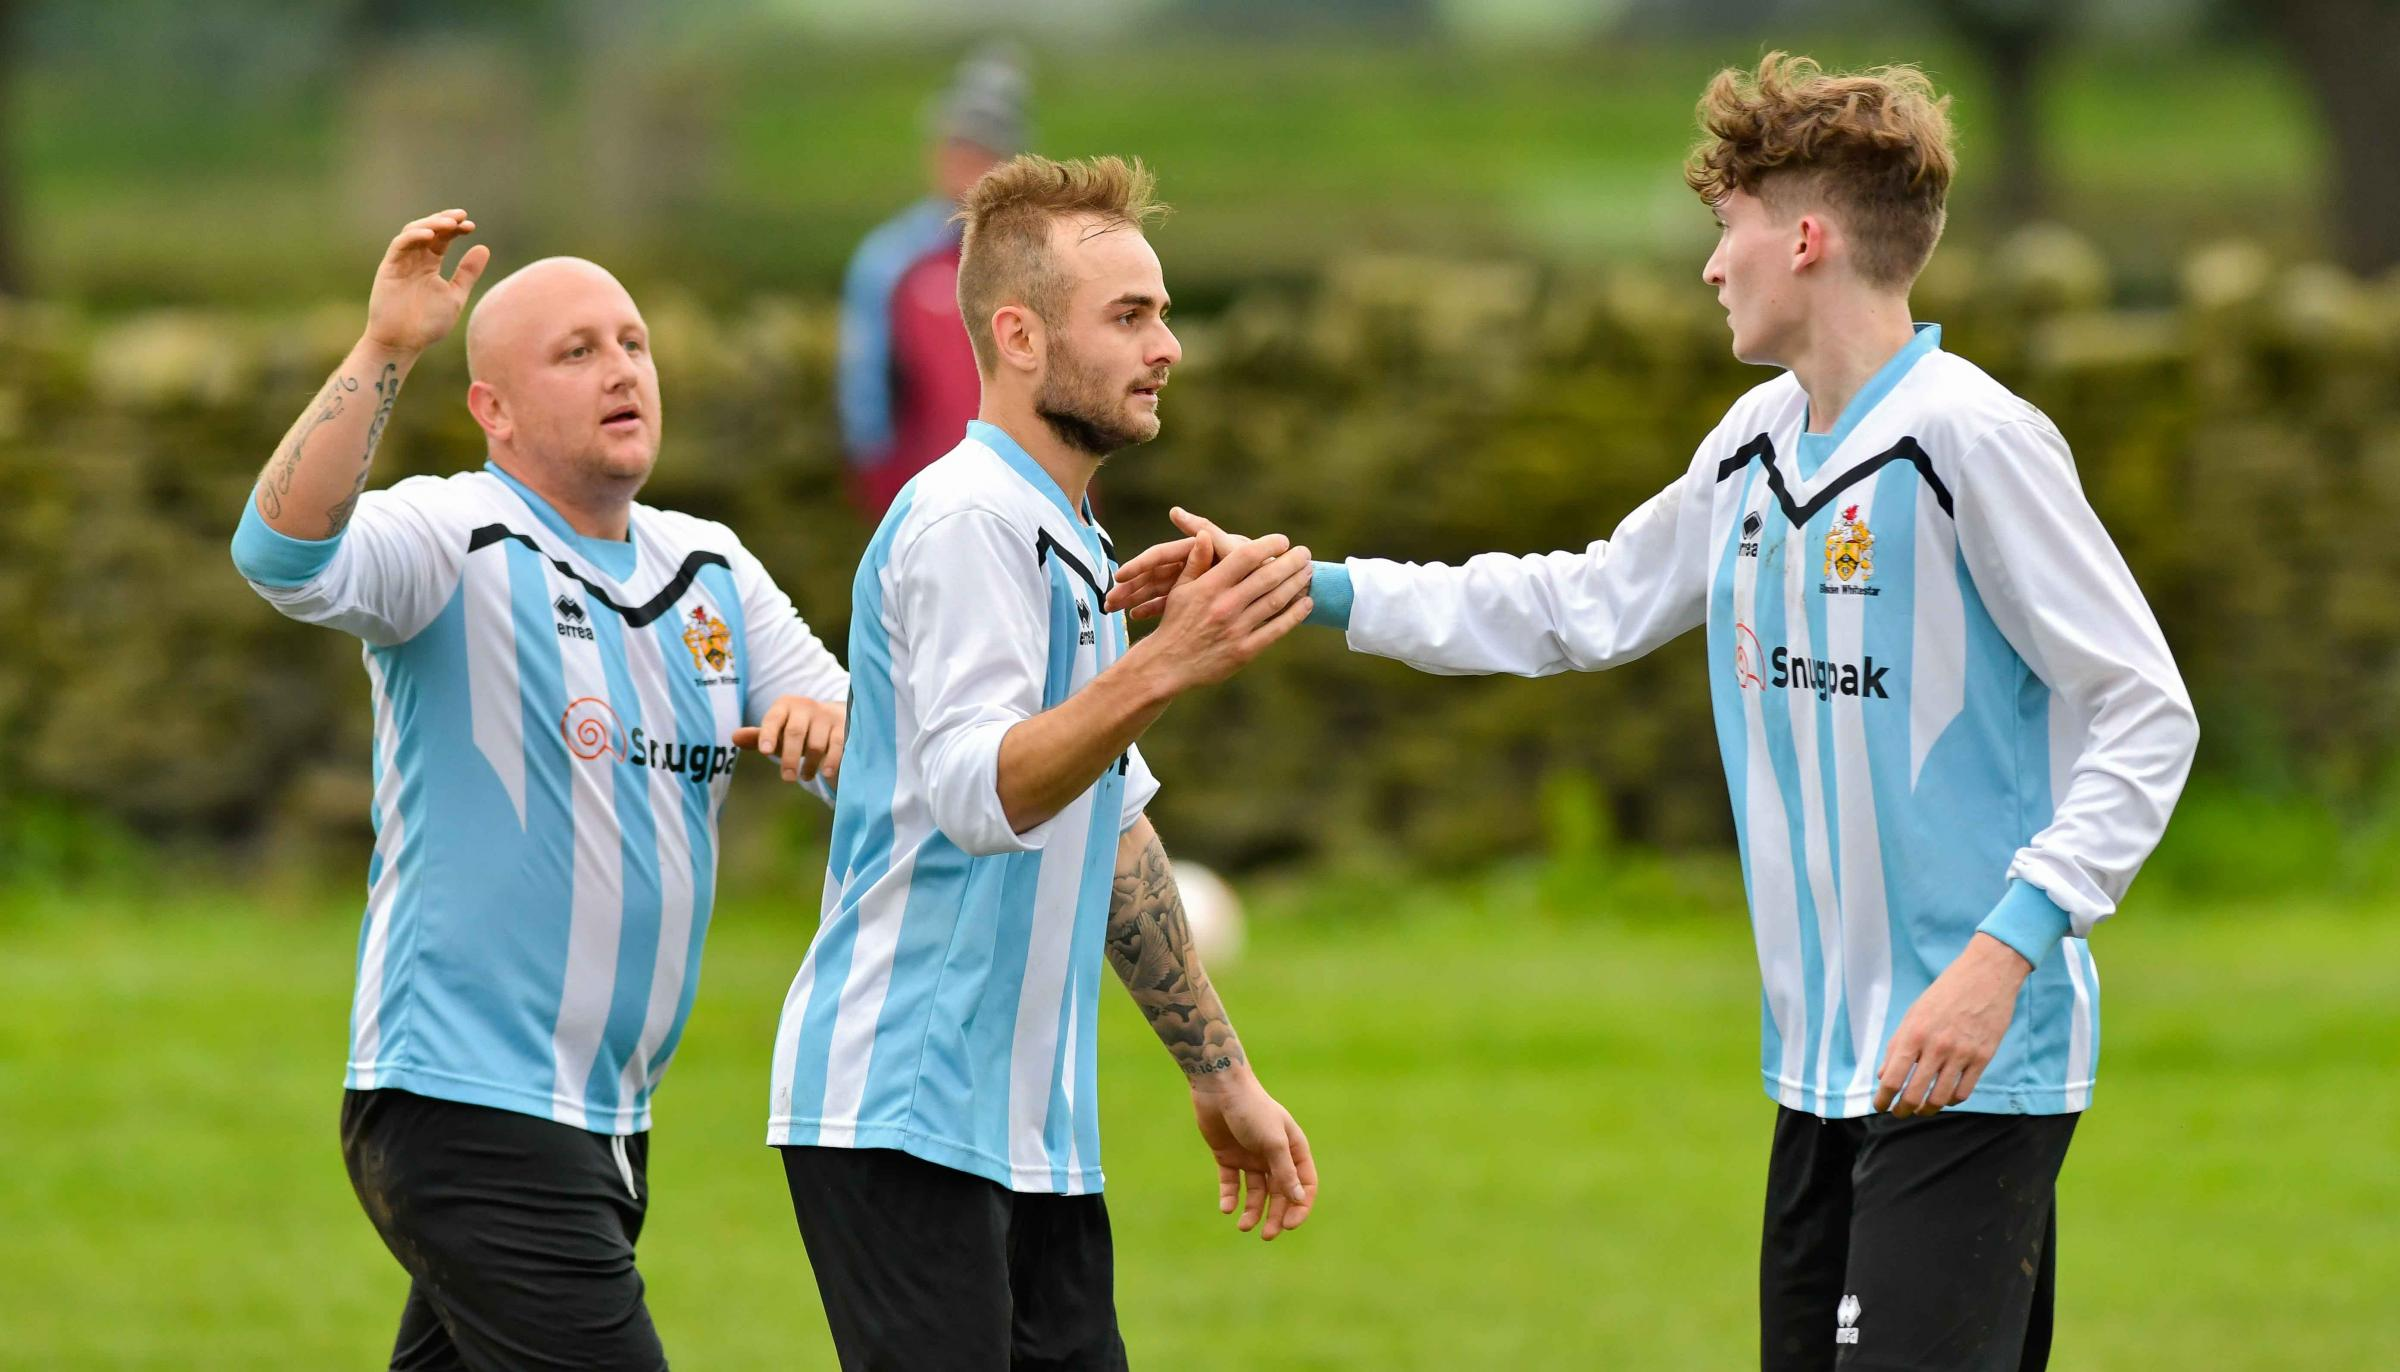 Sam Stanfield, centre, was on target for Silsden Whitestar Reserves